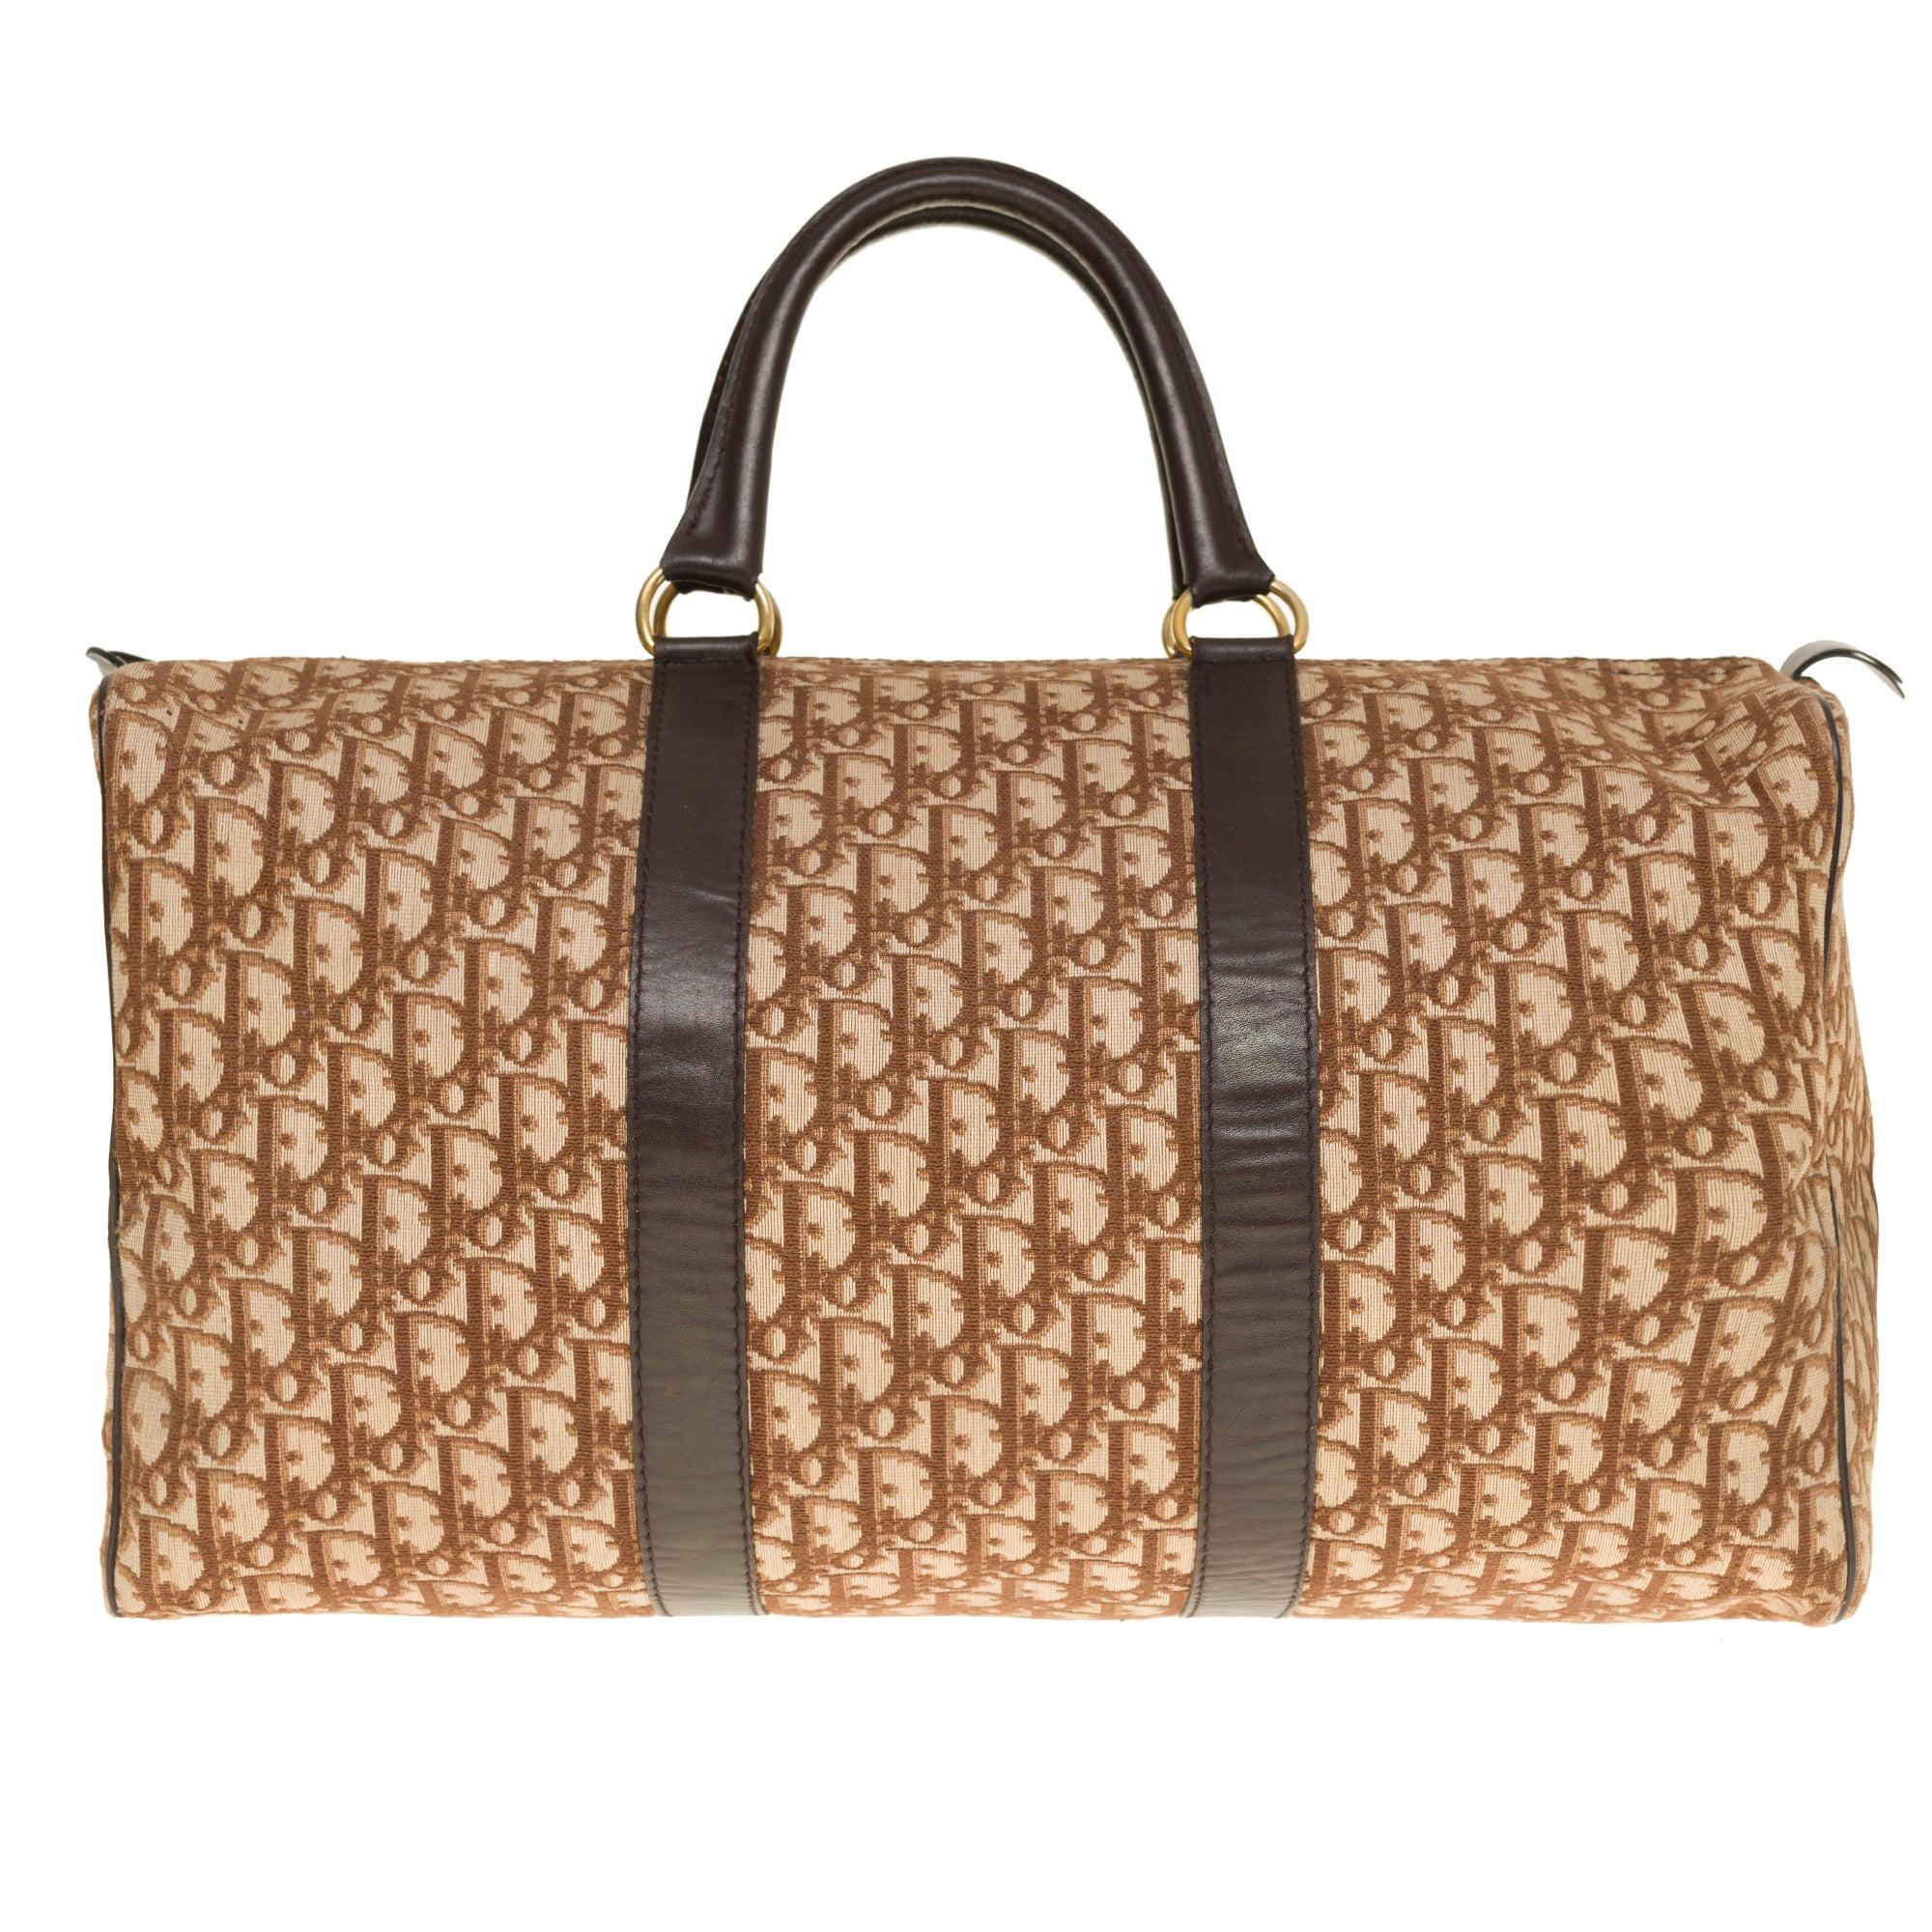 Stunning Christian Dior Travel bag in brown canvas and leather